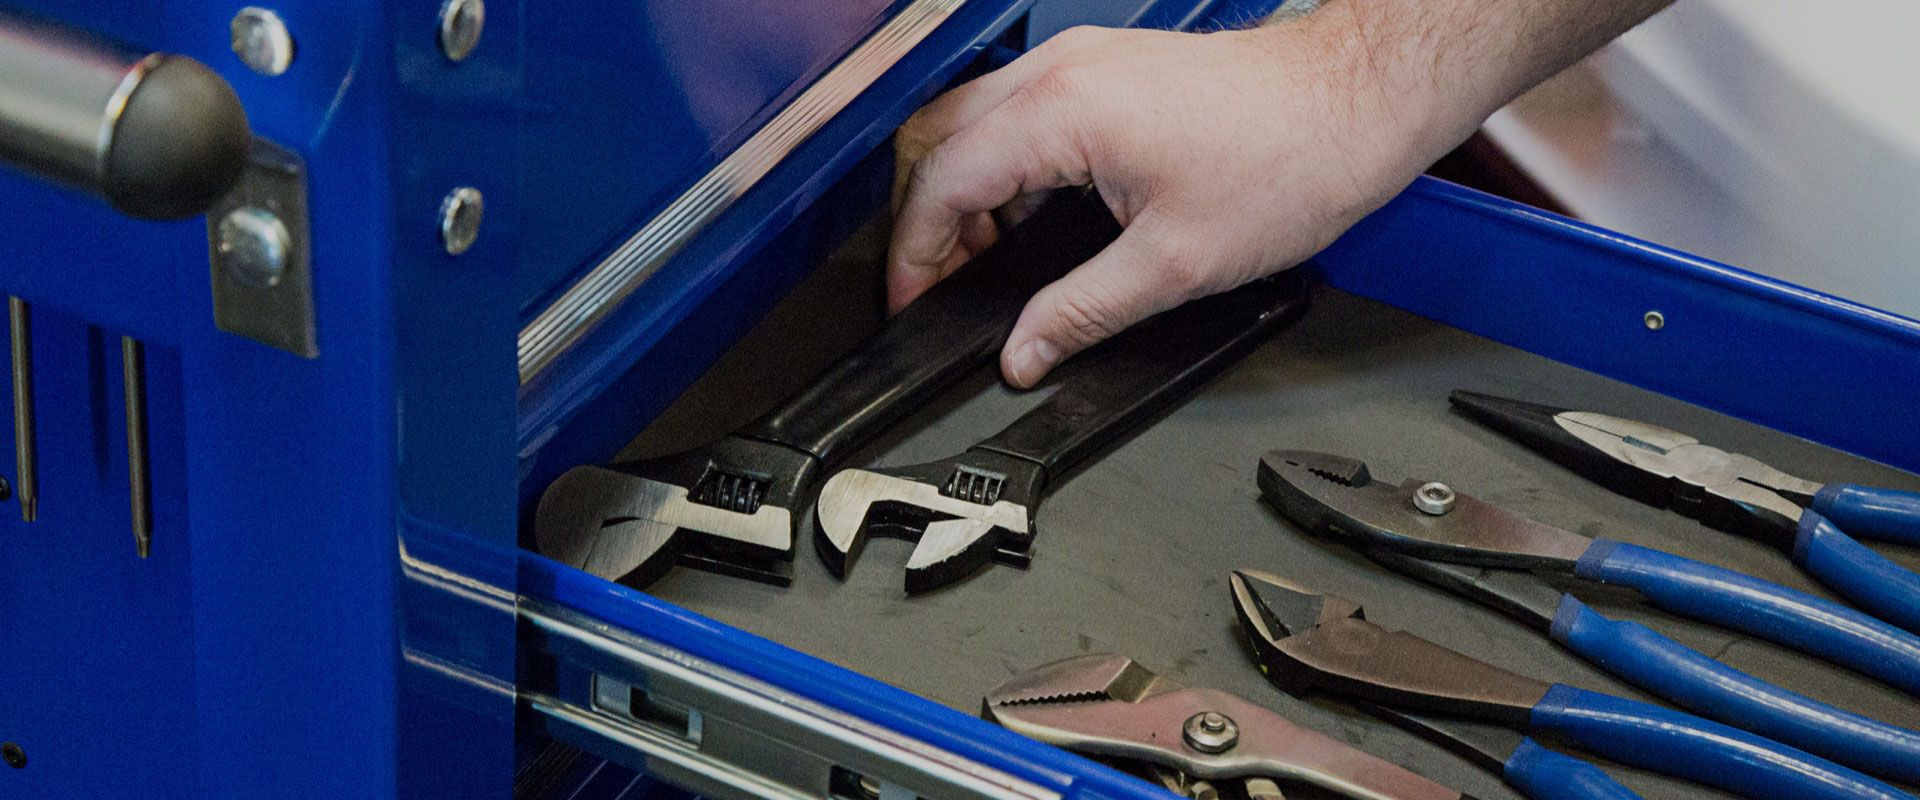 shop hand tools including wrenches, pliers, sockets, ratchets and more